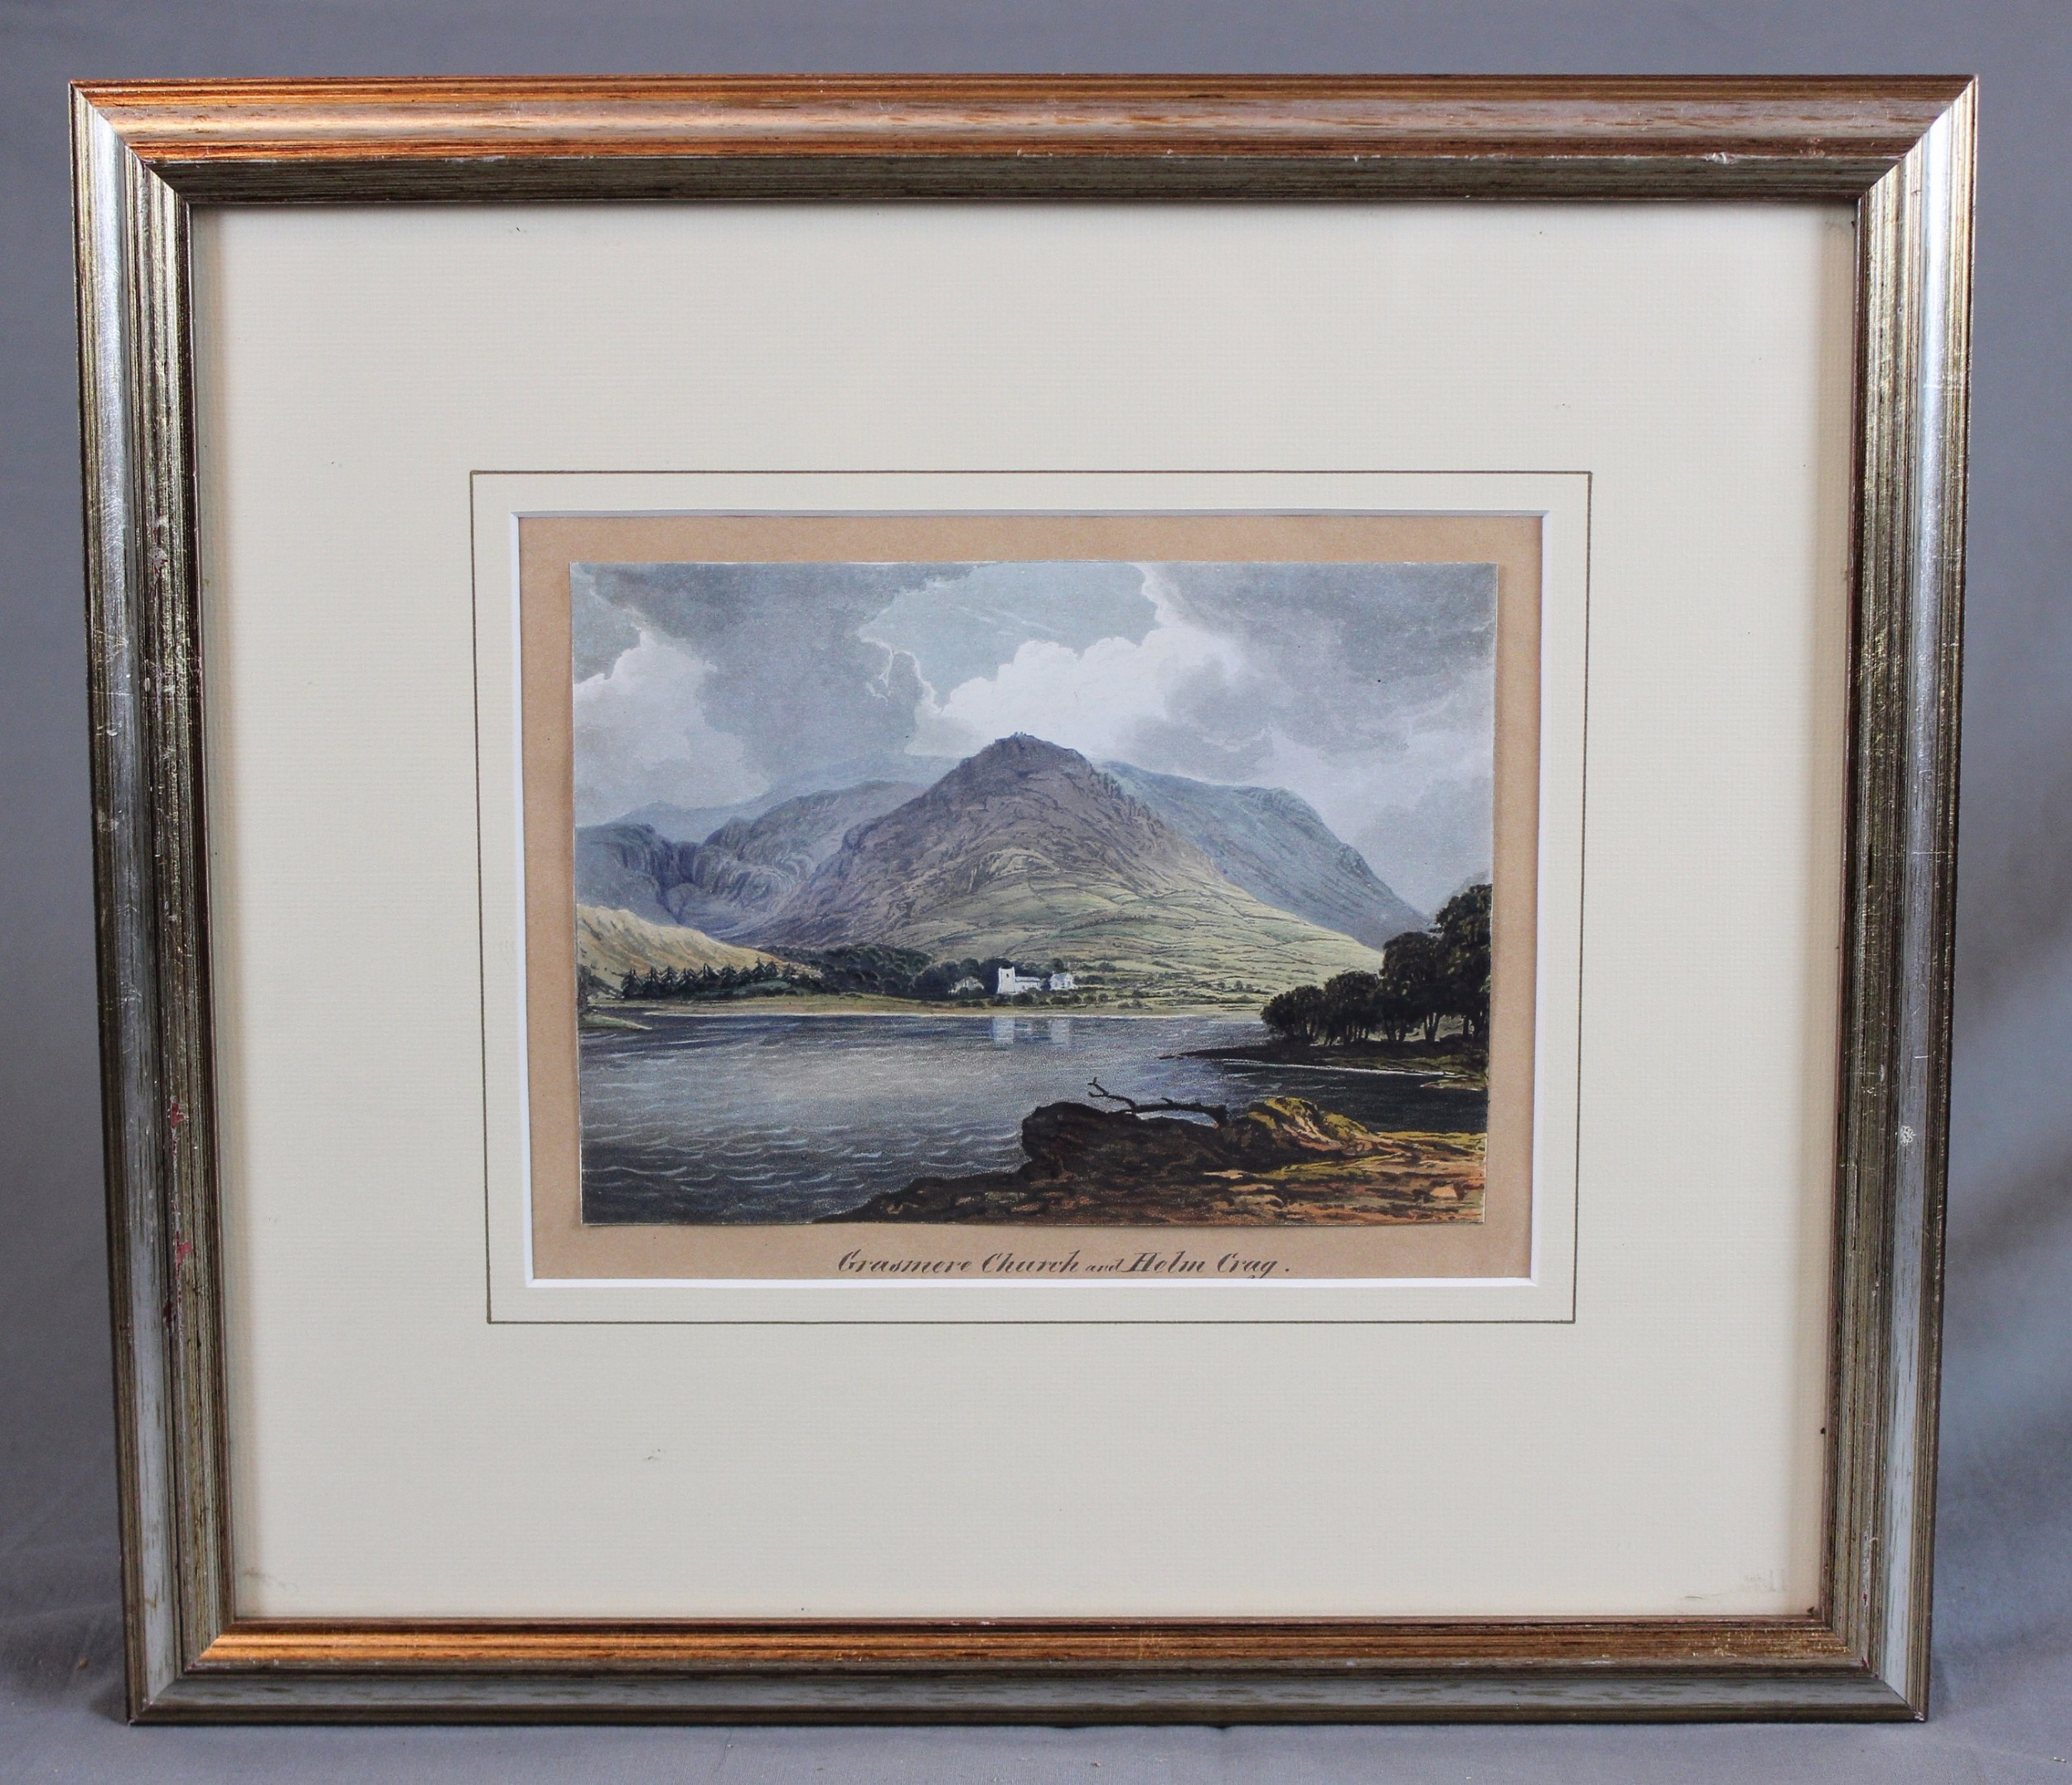 19th century cumbria watercolour grassmere church and helm crag the lion and the lamb